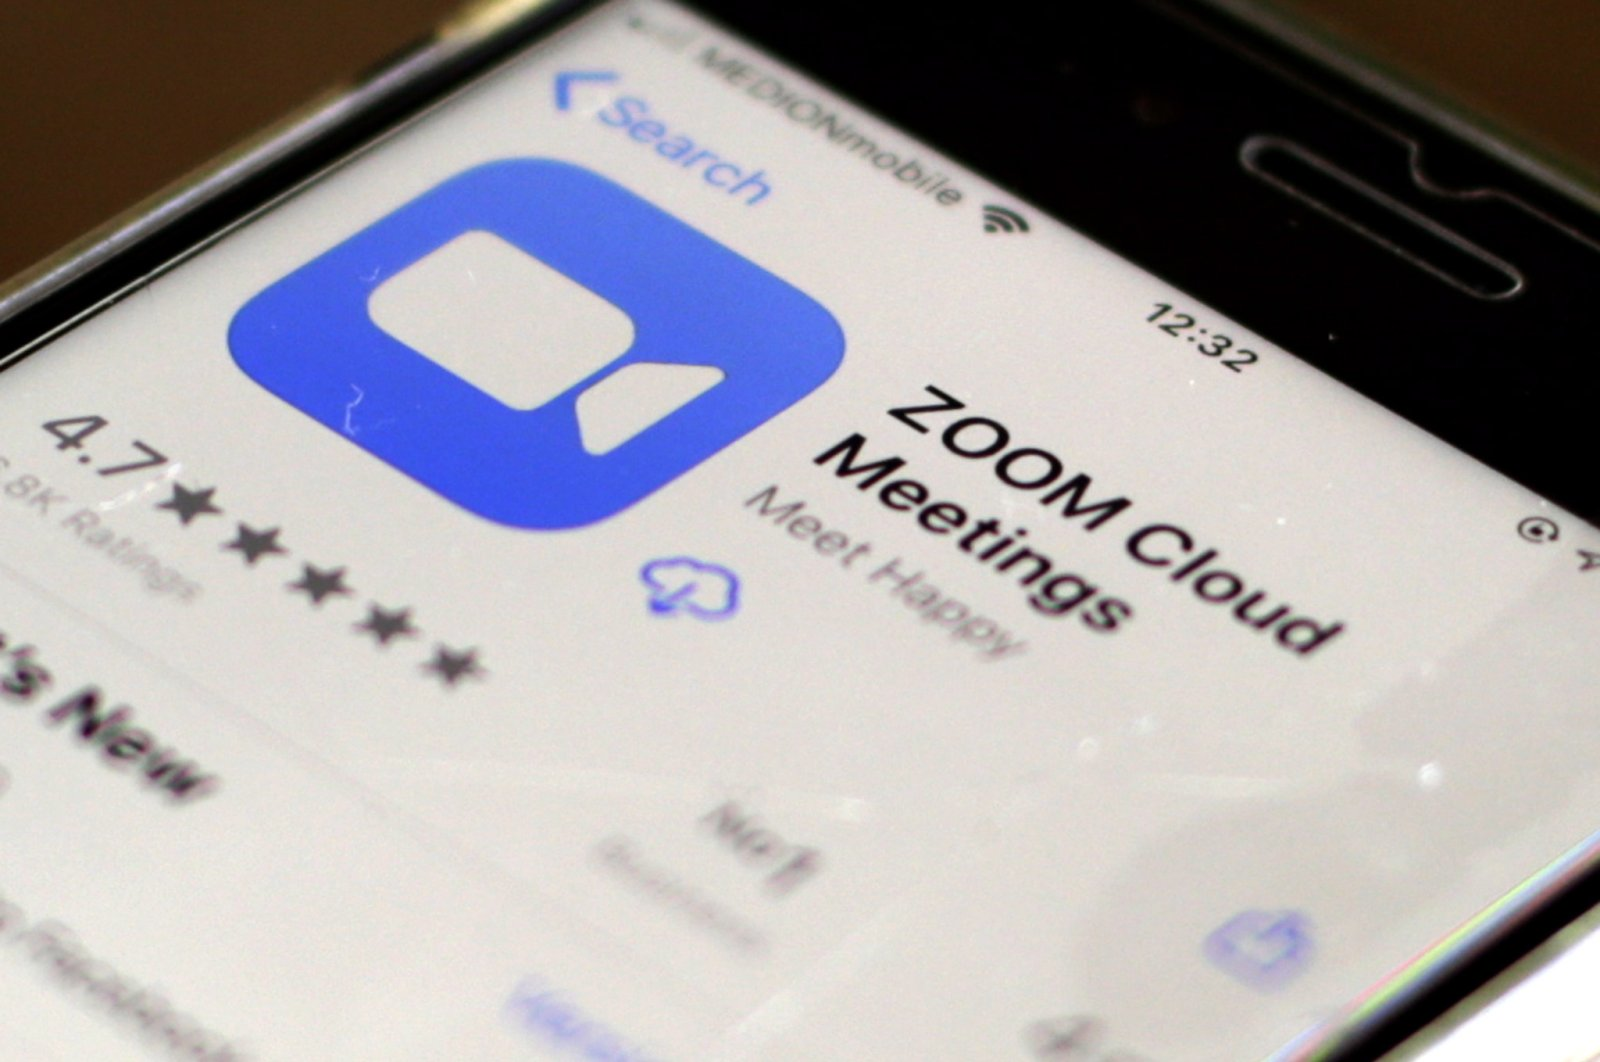 The icon of the videoconferencing app Zoom is displayed on an iPhone in Oestrich-Winkel, Germany, 01 April 2020. (EPA Photo)